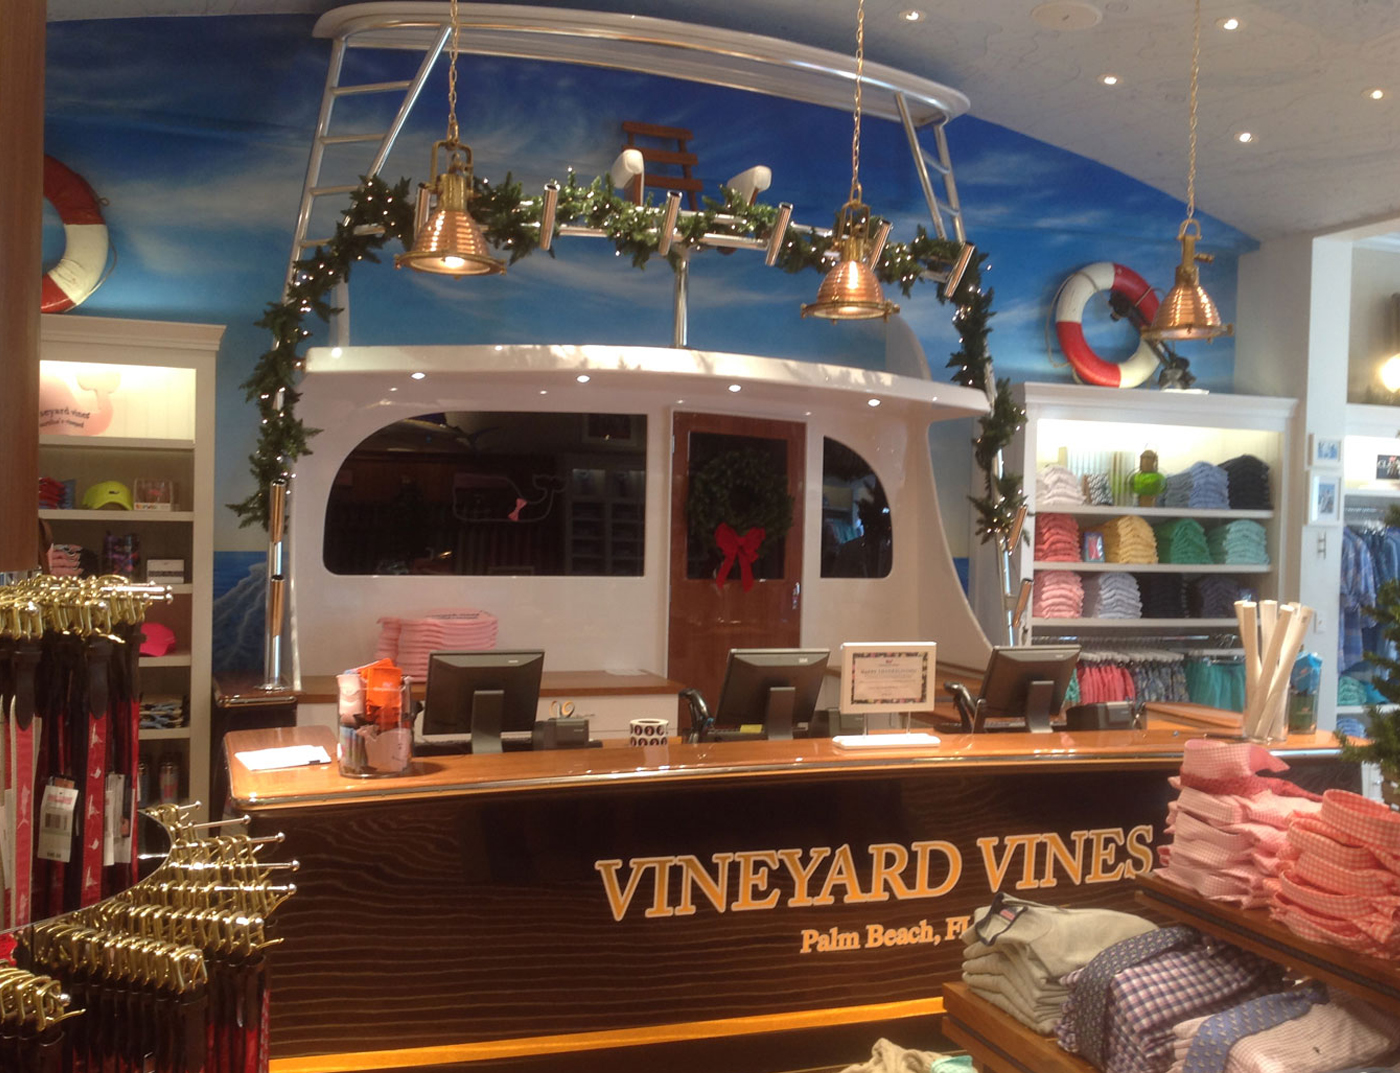 Vineyard Vines, Palm Beach, FL